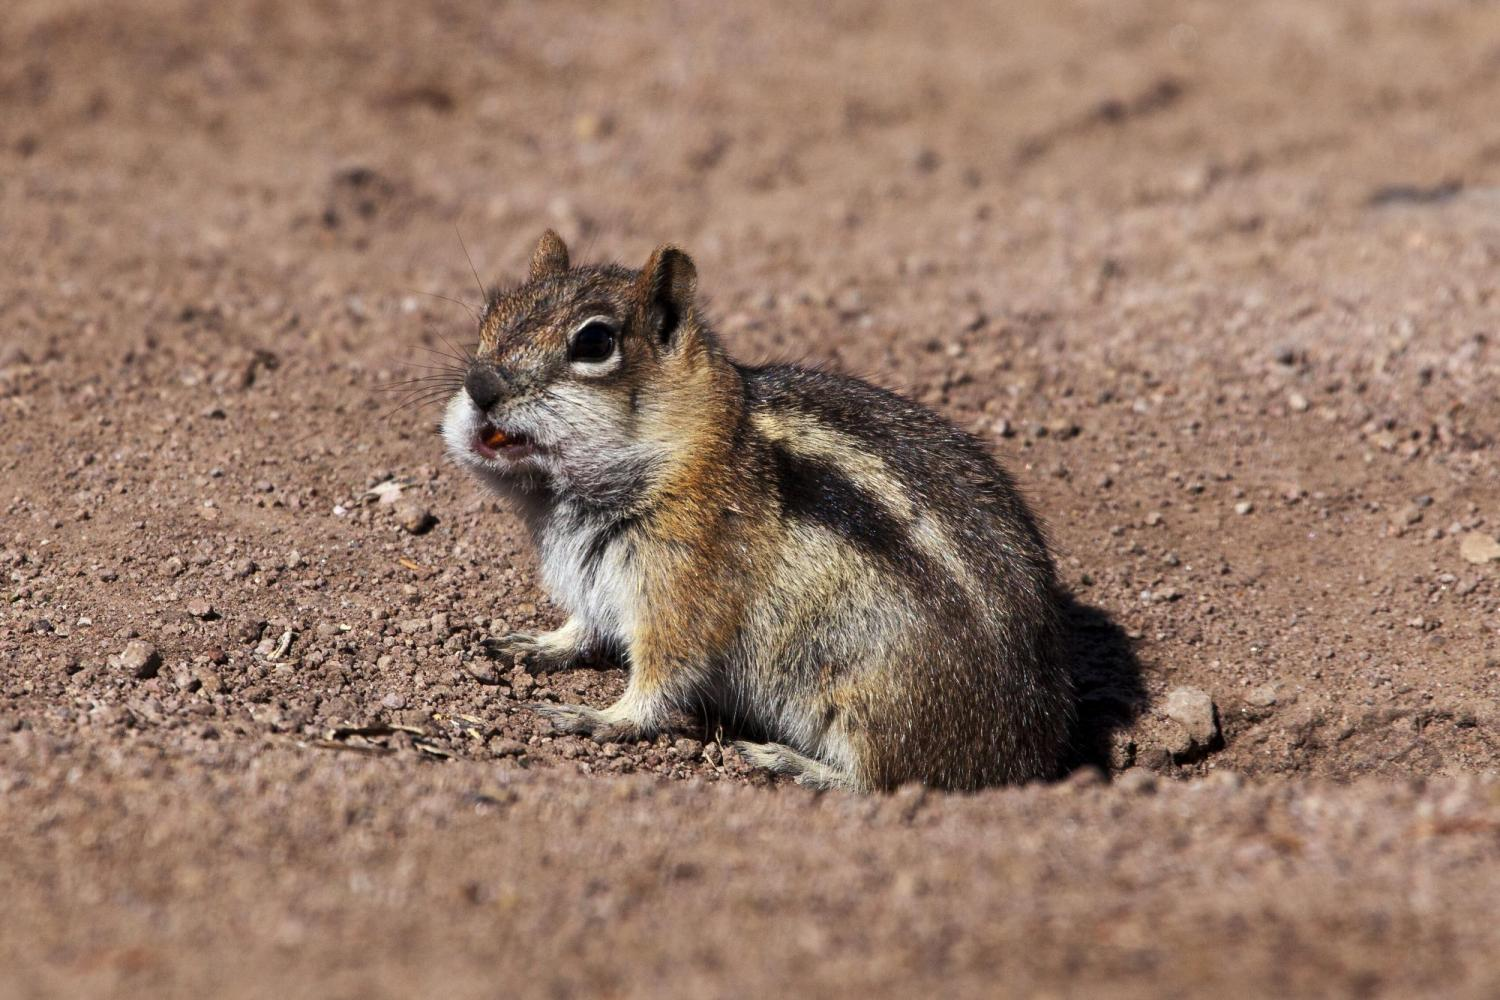 When ground squirrels need to transport food to their burrow, they fill up their cheek pouches, leaving their legs free for climbing and running.